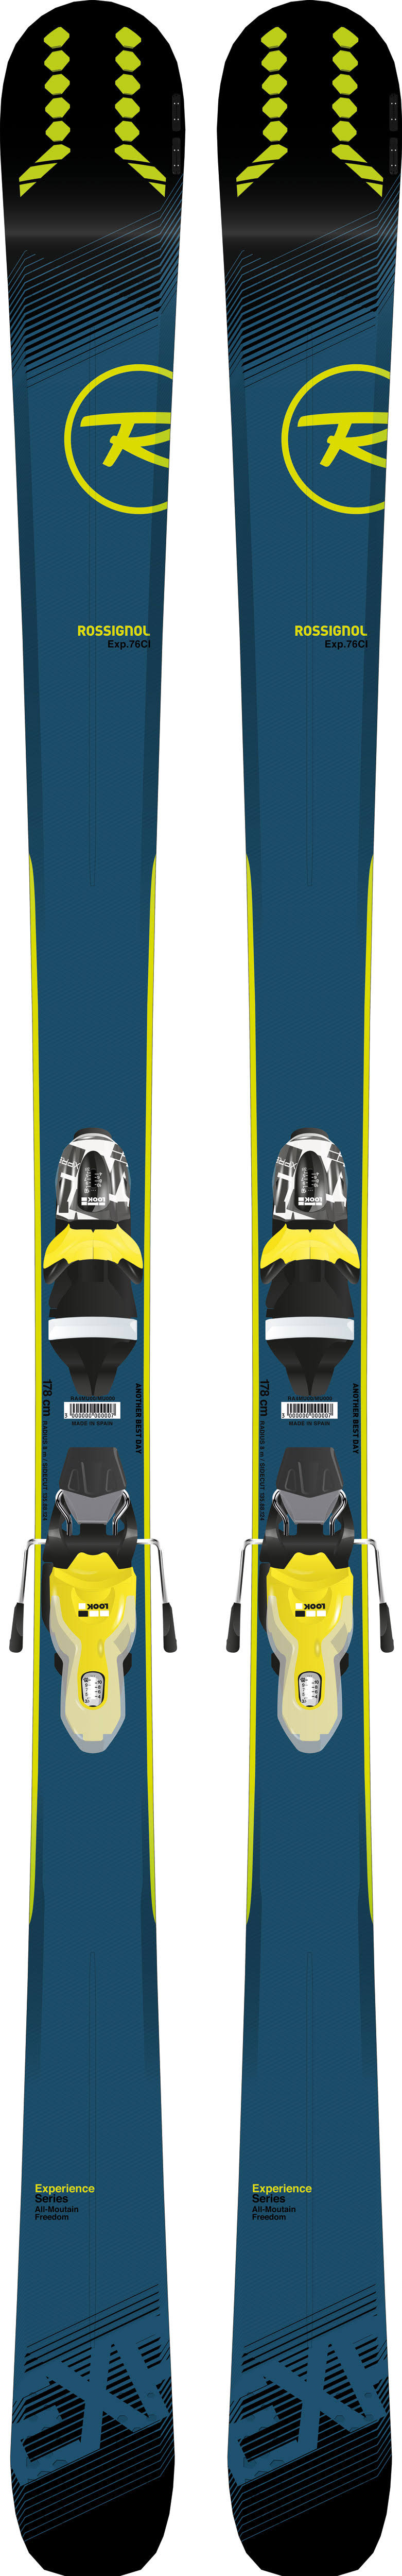 Rossignol Ski Company Men's Experience 76 CI Ski with Look Xpress 10 Binding